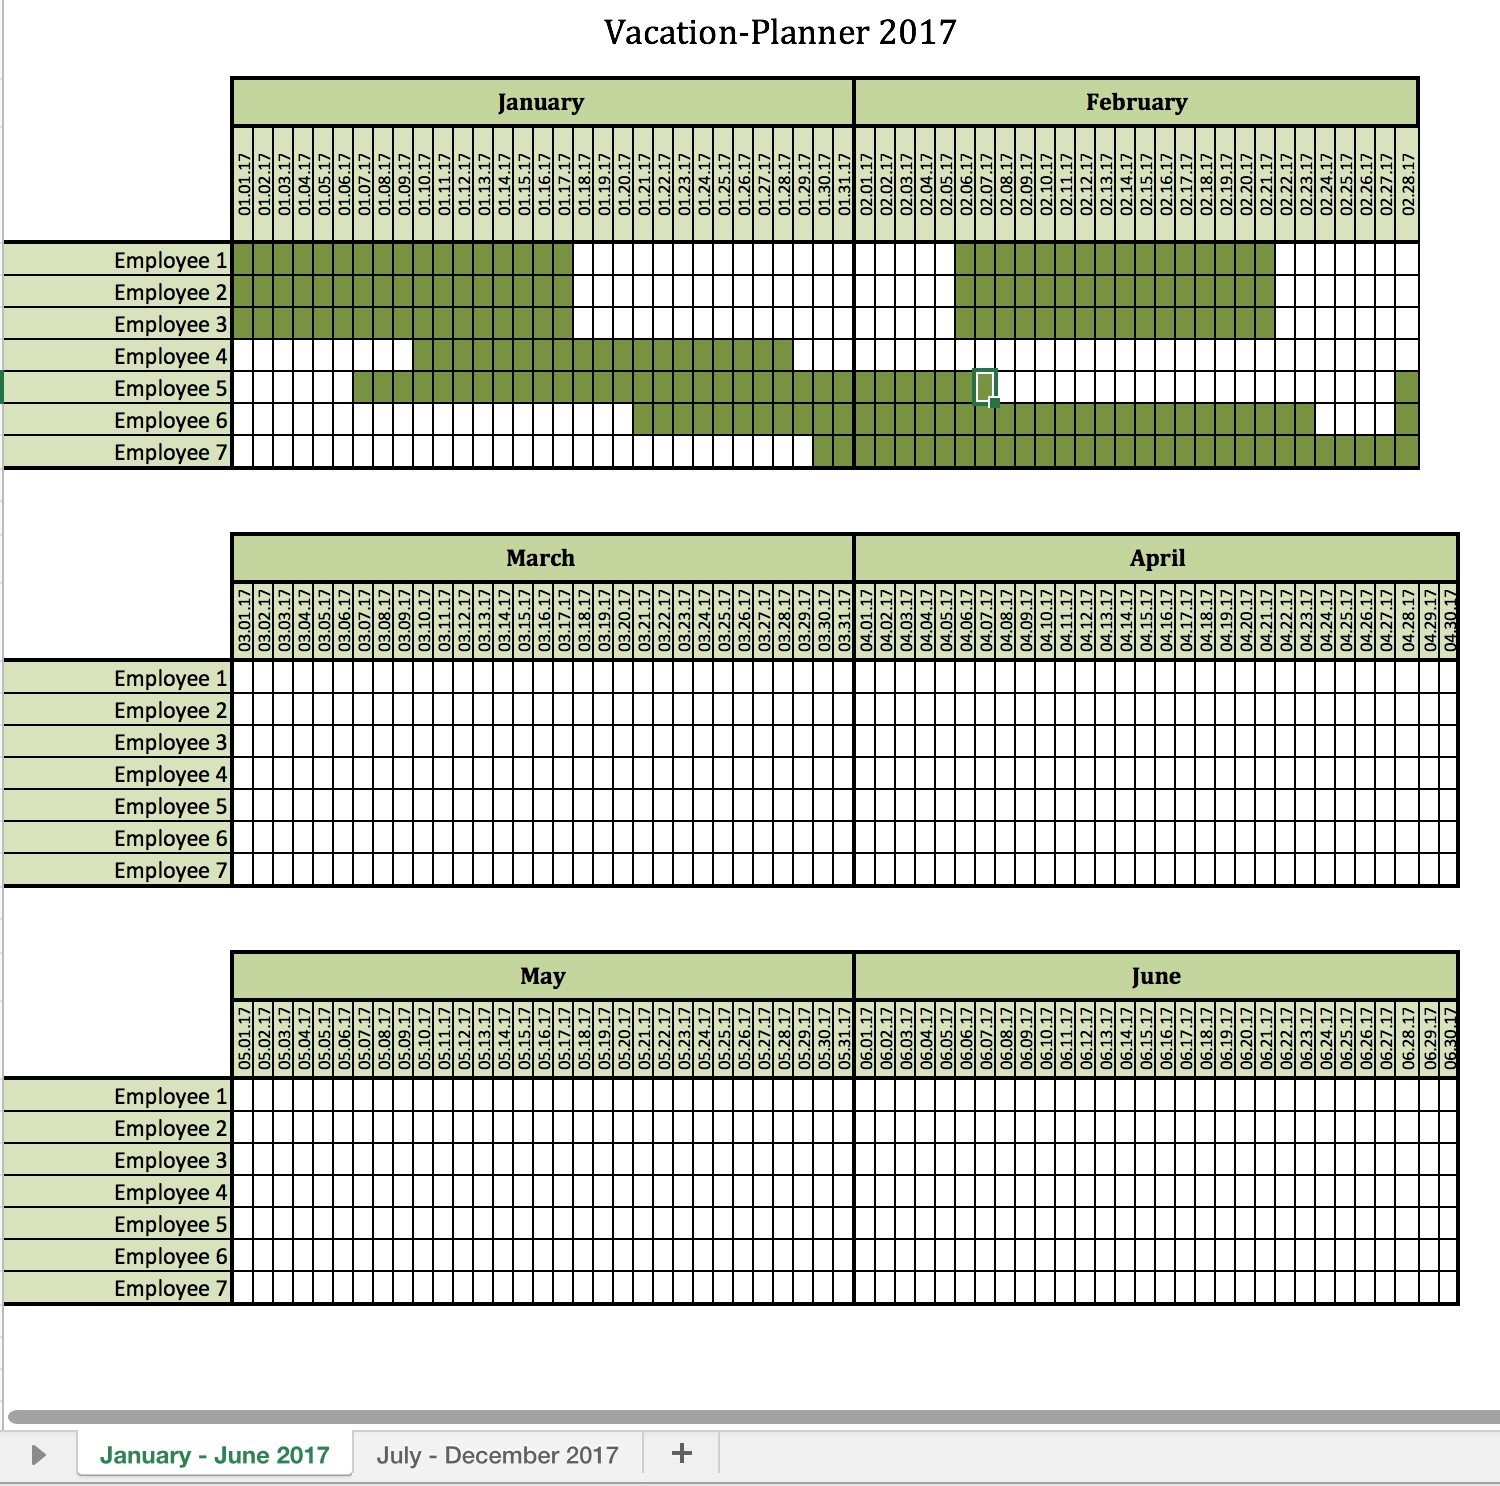 vacation planner 2018 excel templates for every purpose Vacation Planner Calendar 2018 erdferdf